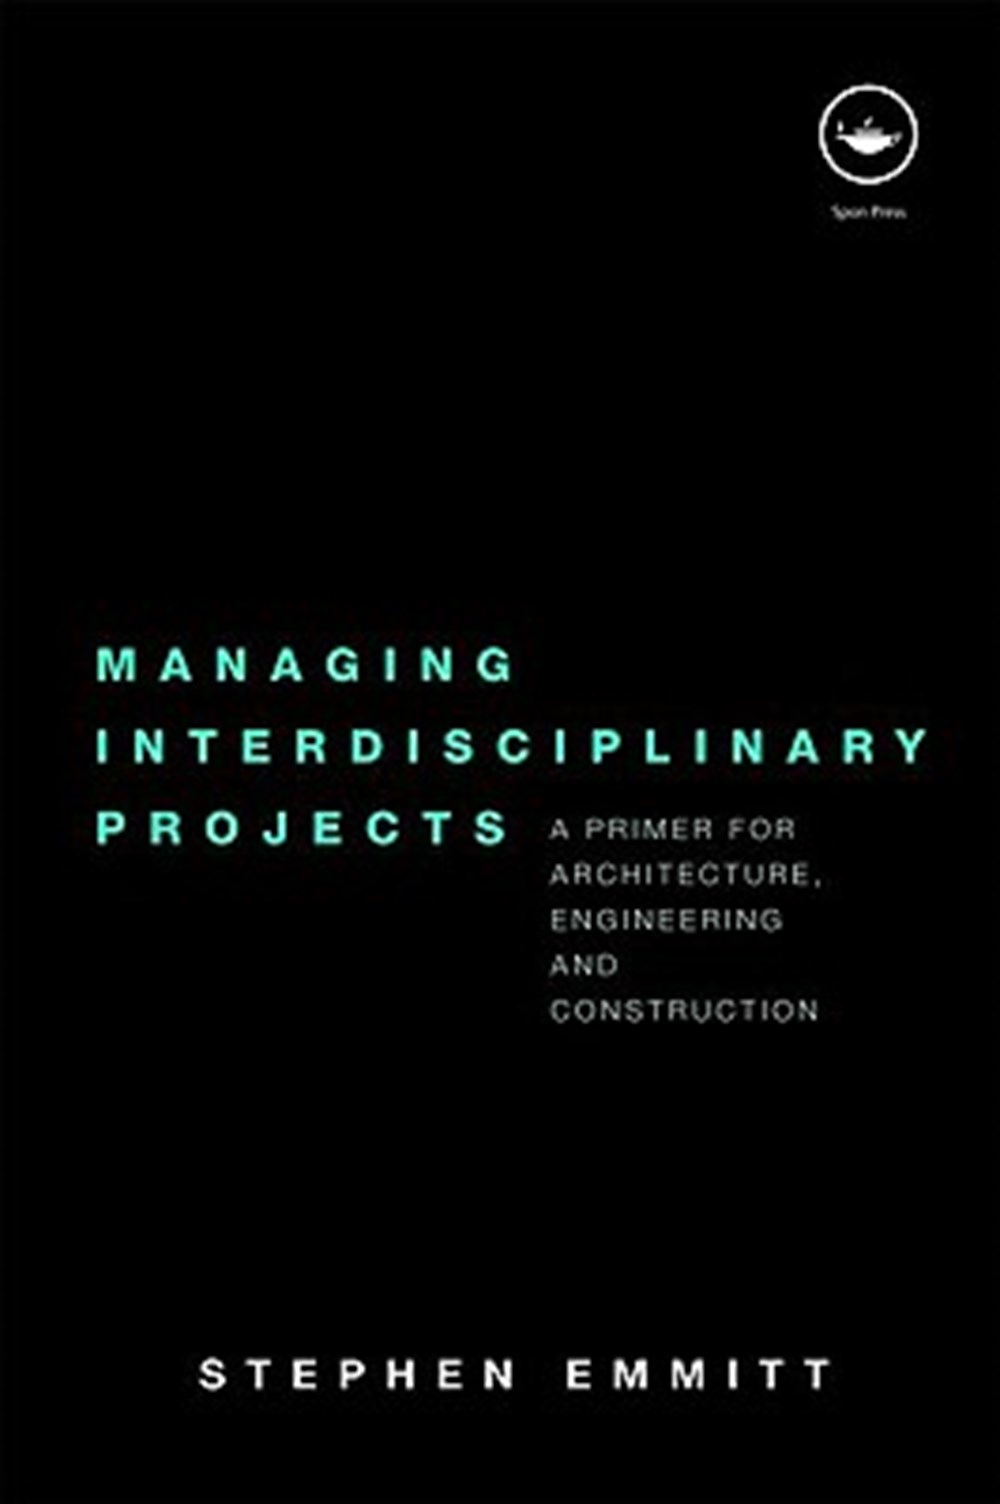 Managing Interdisciplinary Projects A Primer for Architecture, Engineering and Construction